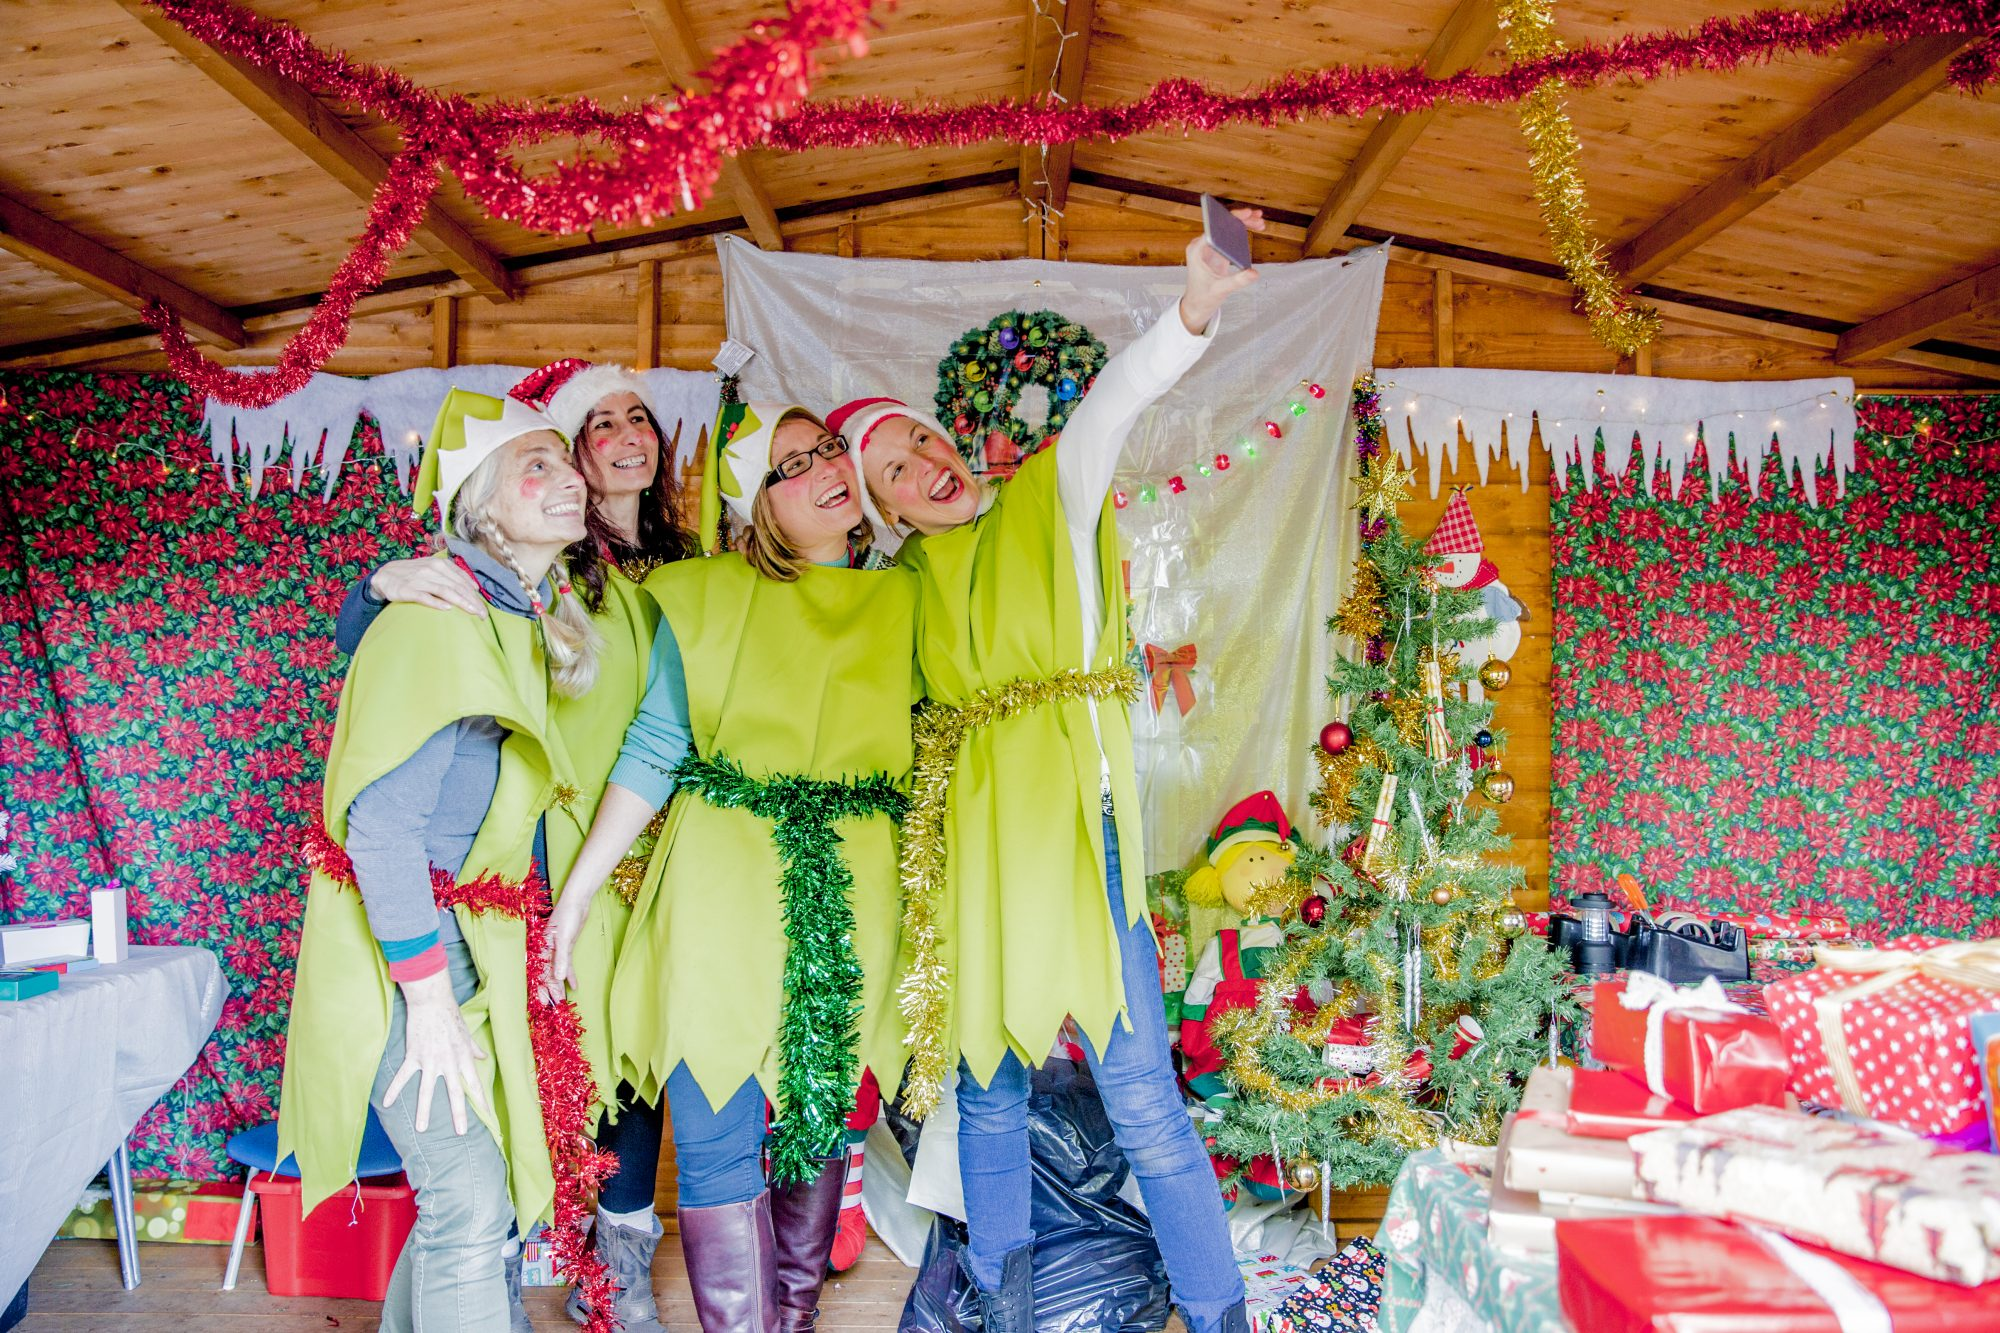 Lapland Safaris Is Hiring Elves to Spend Christmas in Finland